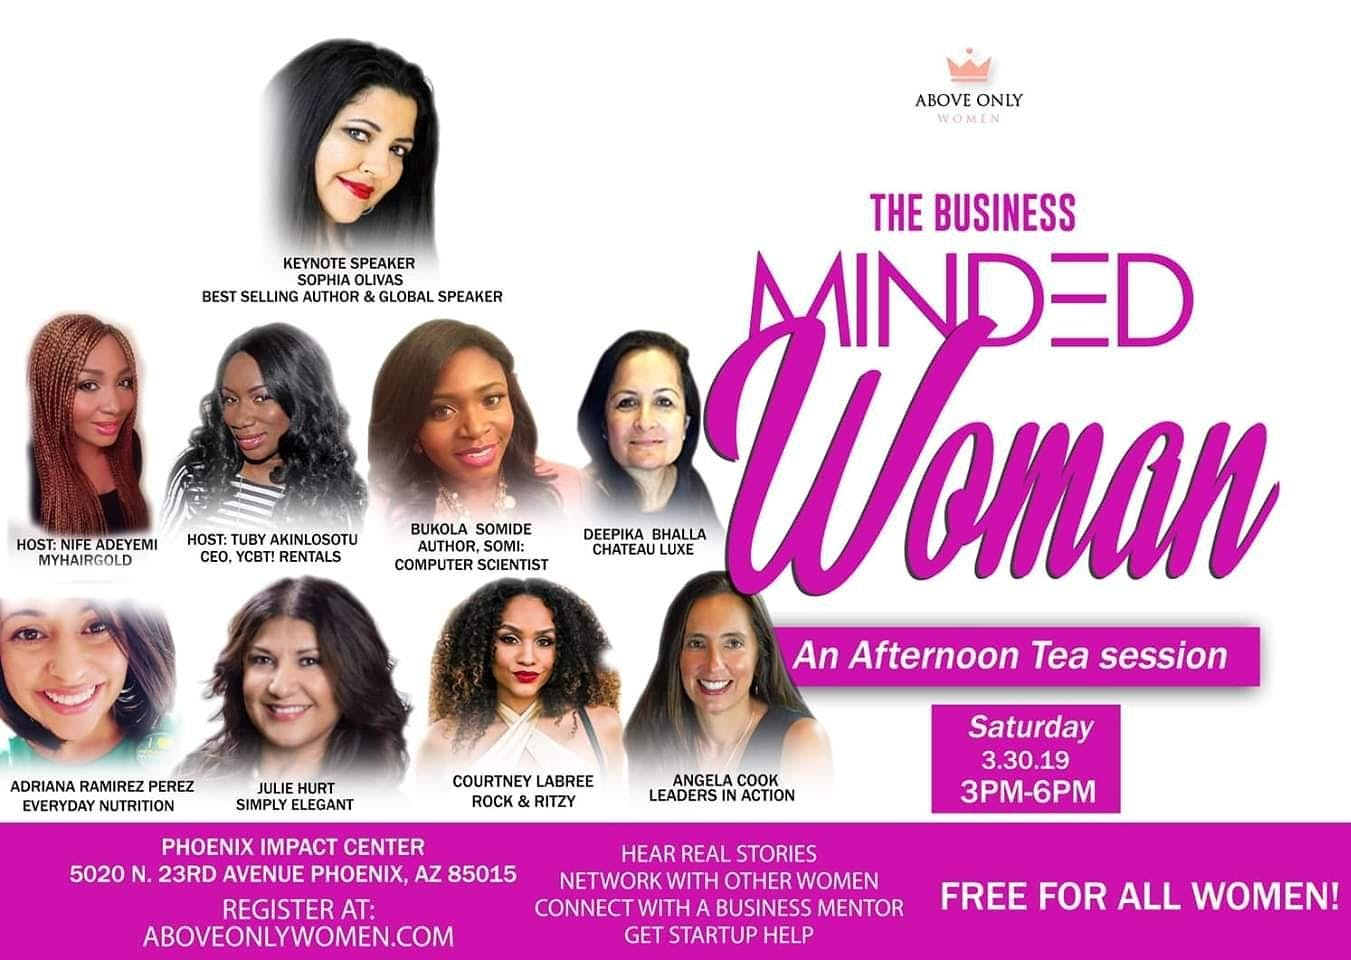 The Business Minded Woman: An Afternoon Tea Workshop & Networking Session